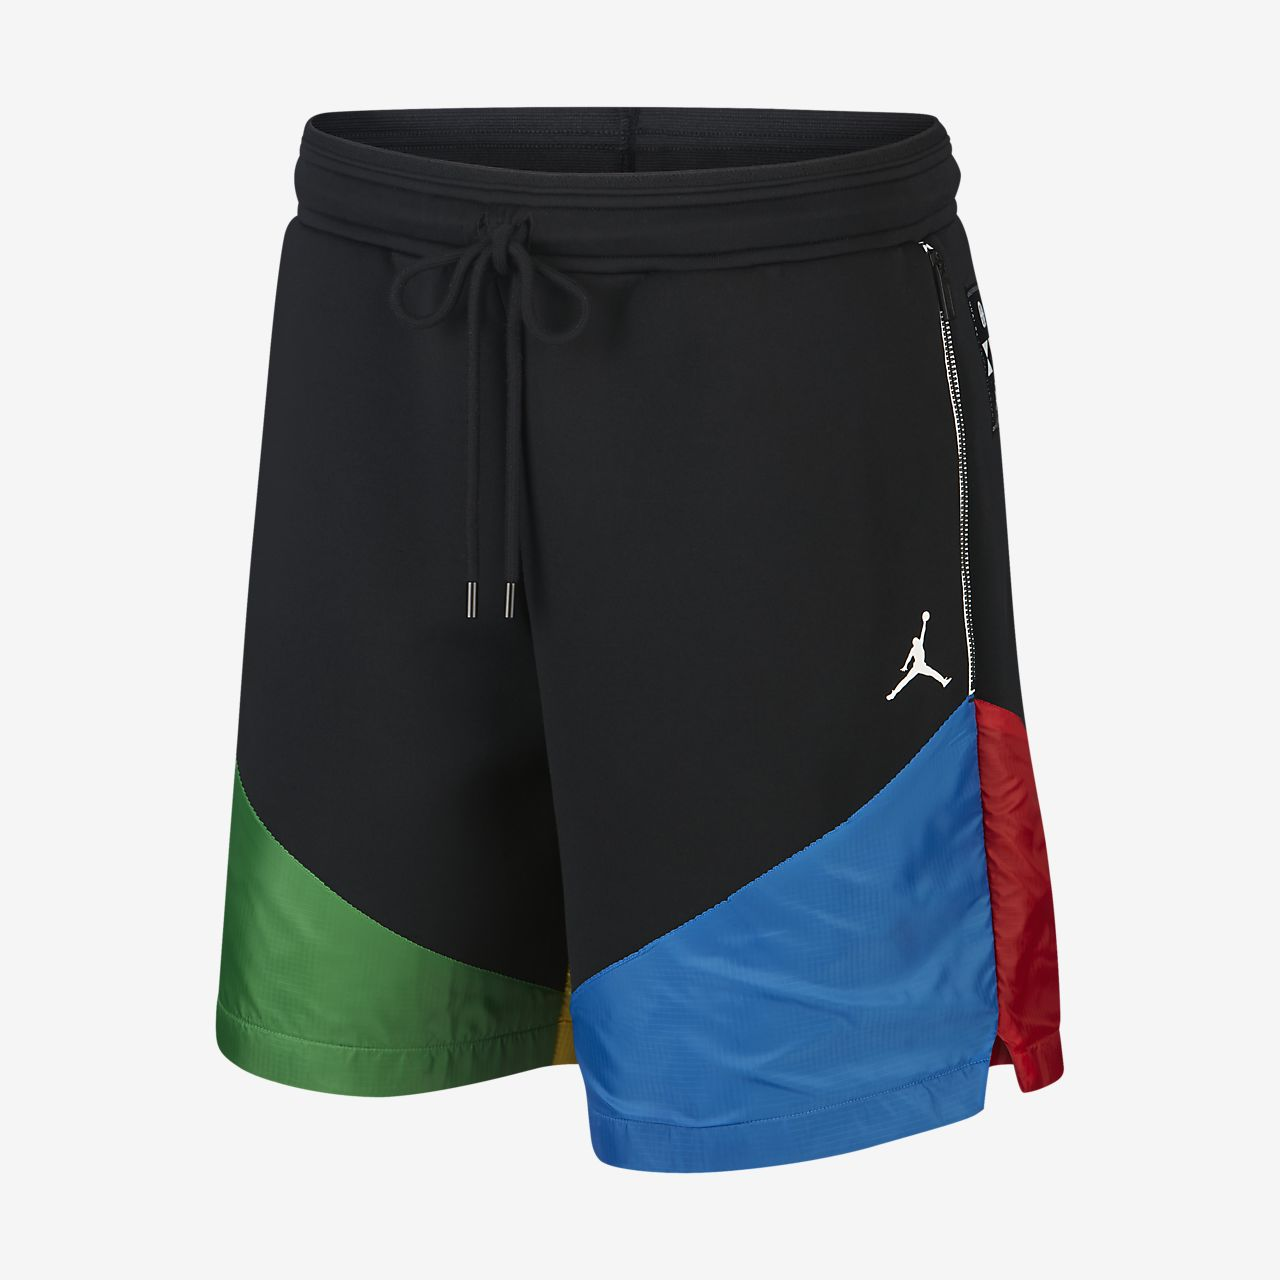 Jordan Quai54 23 Engineered Men's Shorts